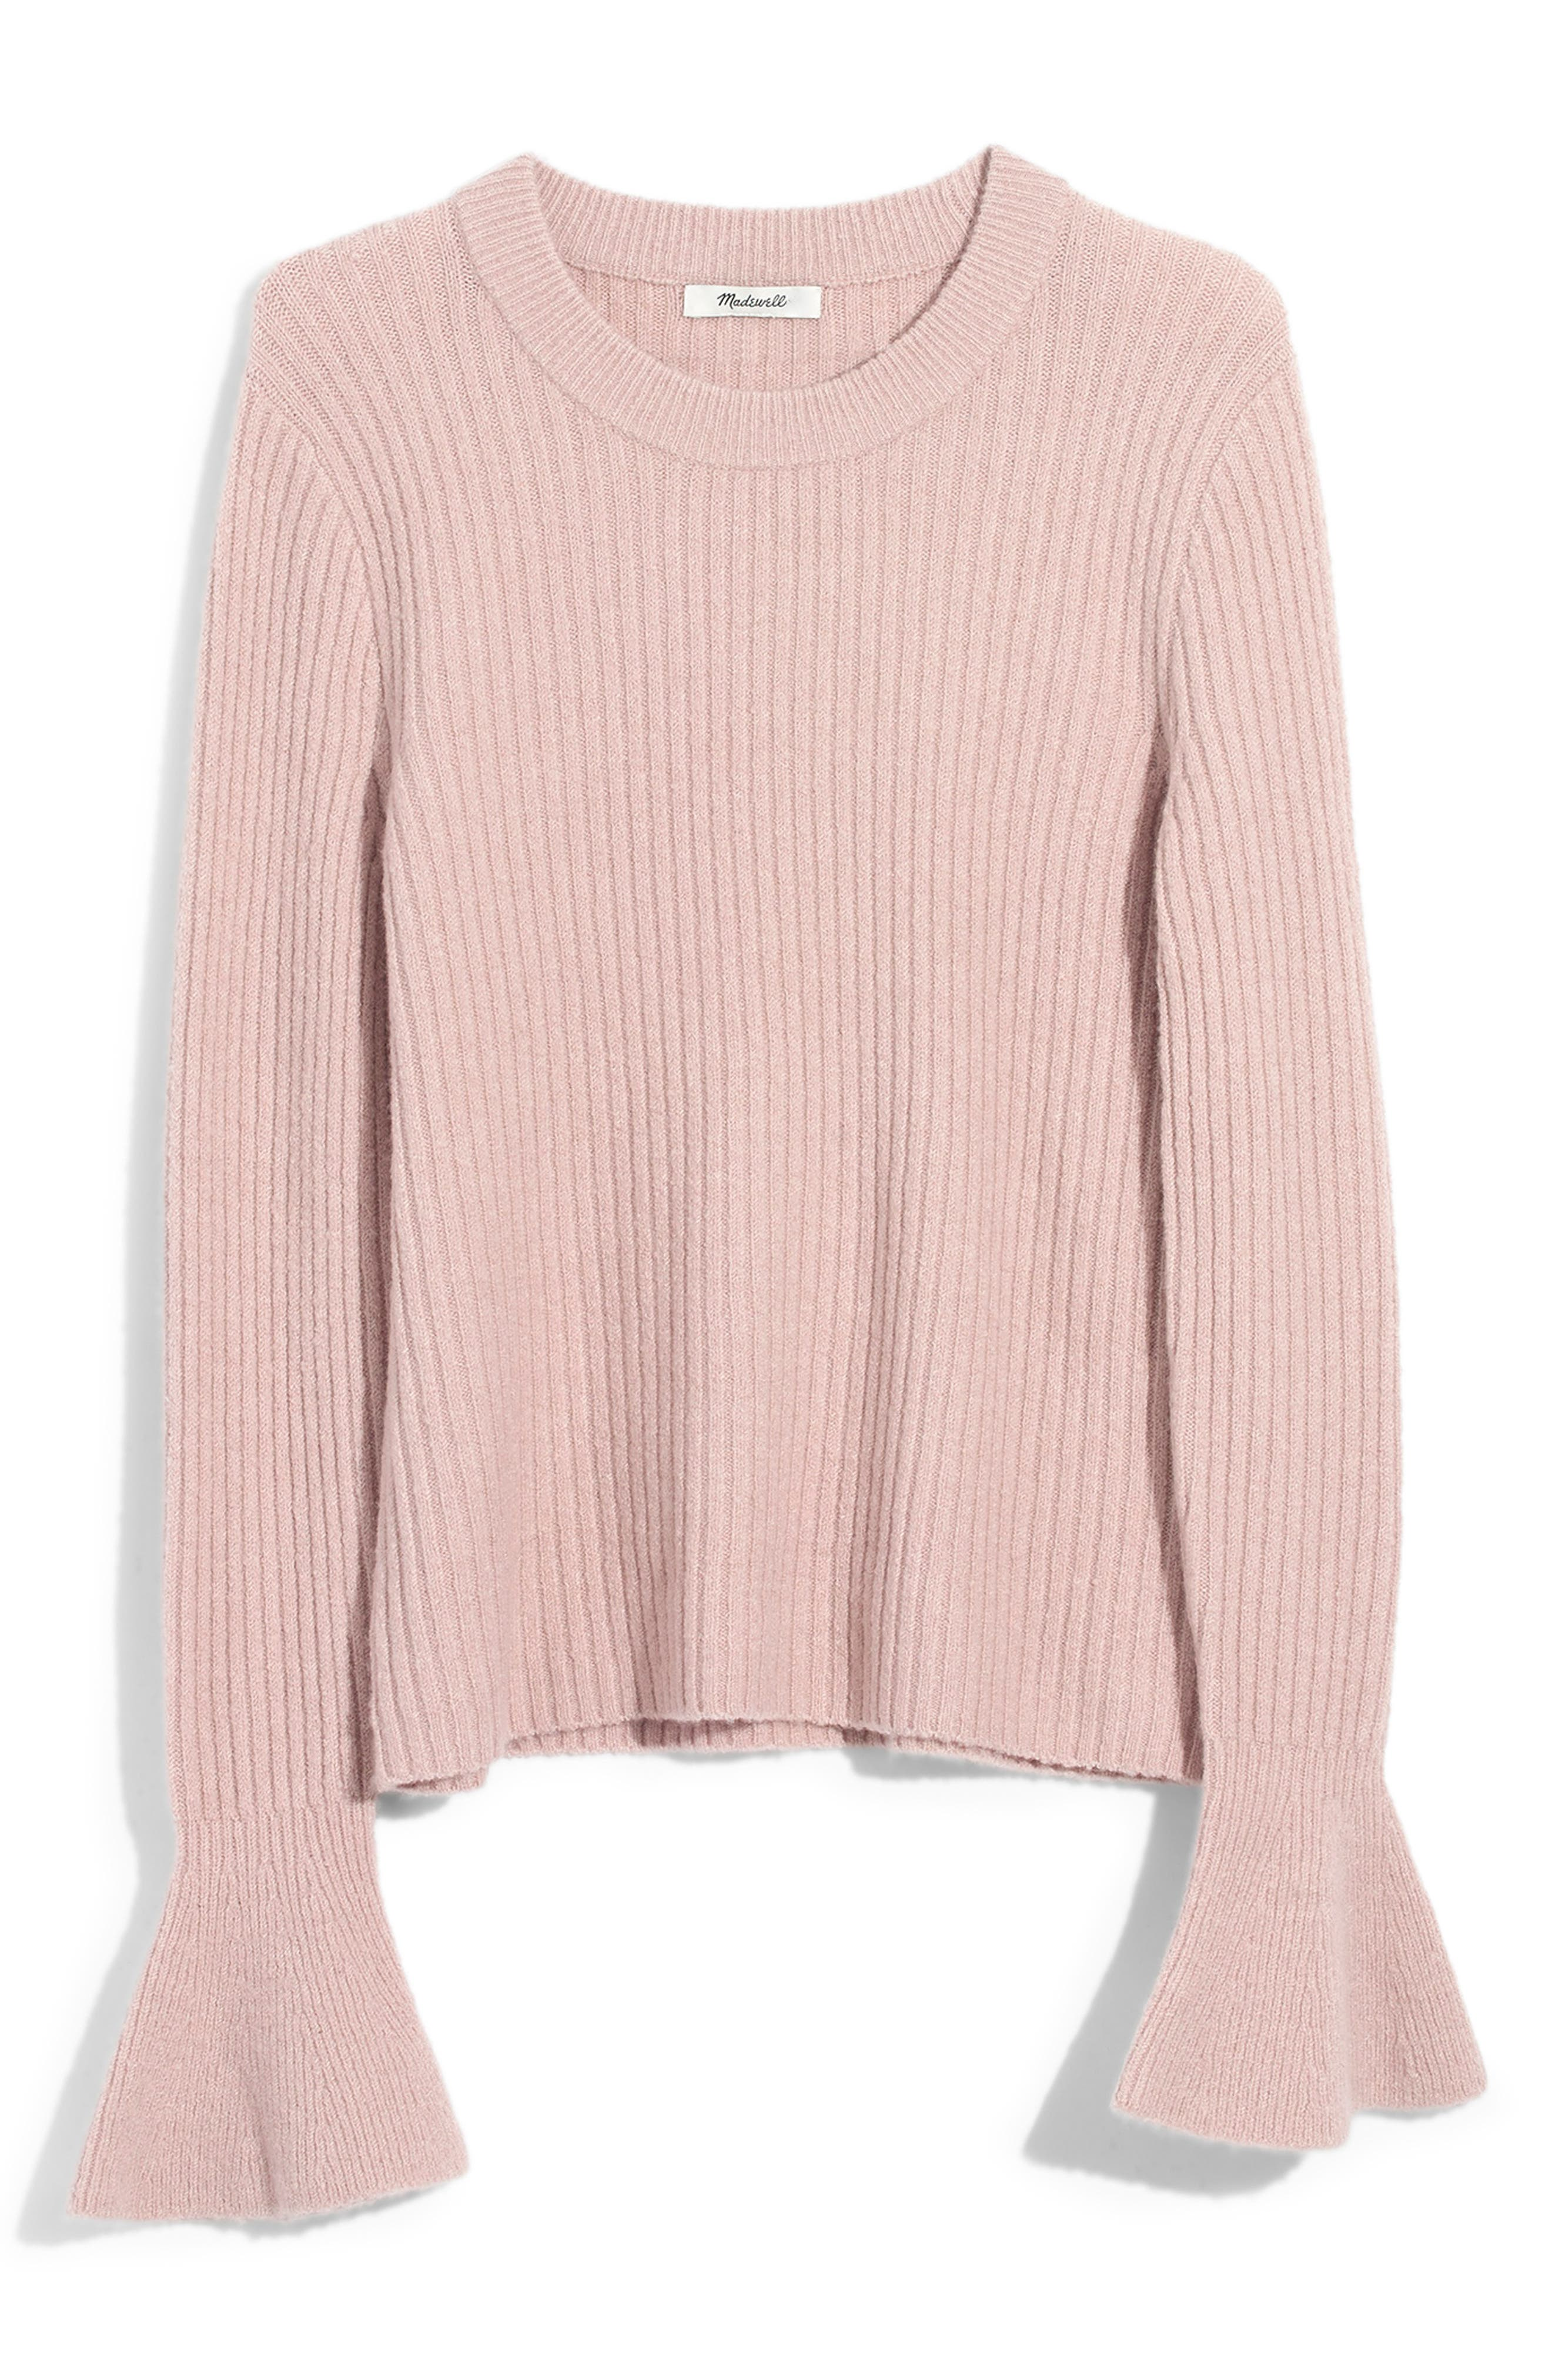 MADEWELL, Ruffle Cuff Pullover Sweater, Main thumbnail 1, color, ICED ROSE